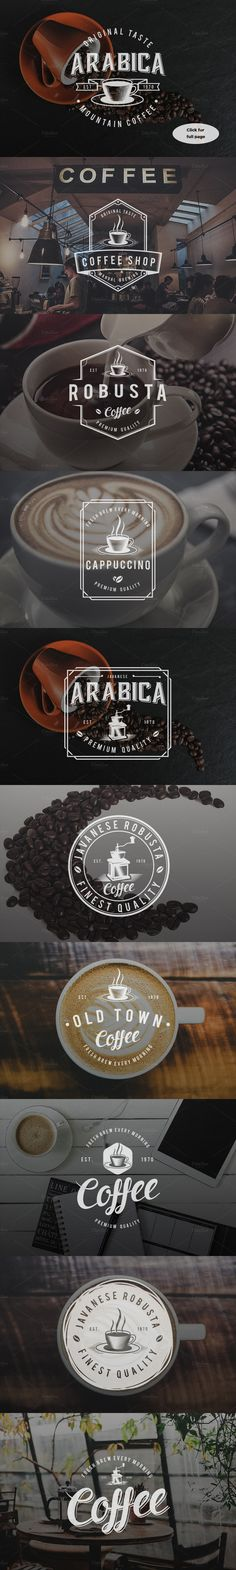 10 Vintage Coffee Logo Badges: logo templates perfect for branding a coffee shop ☕️